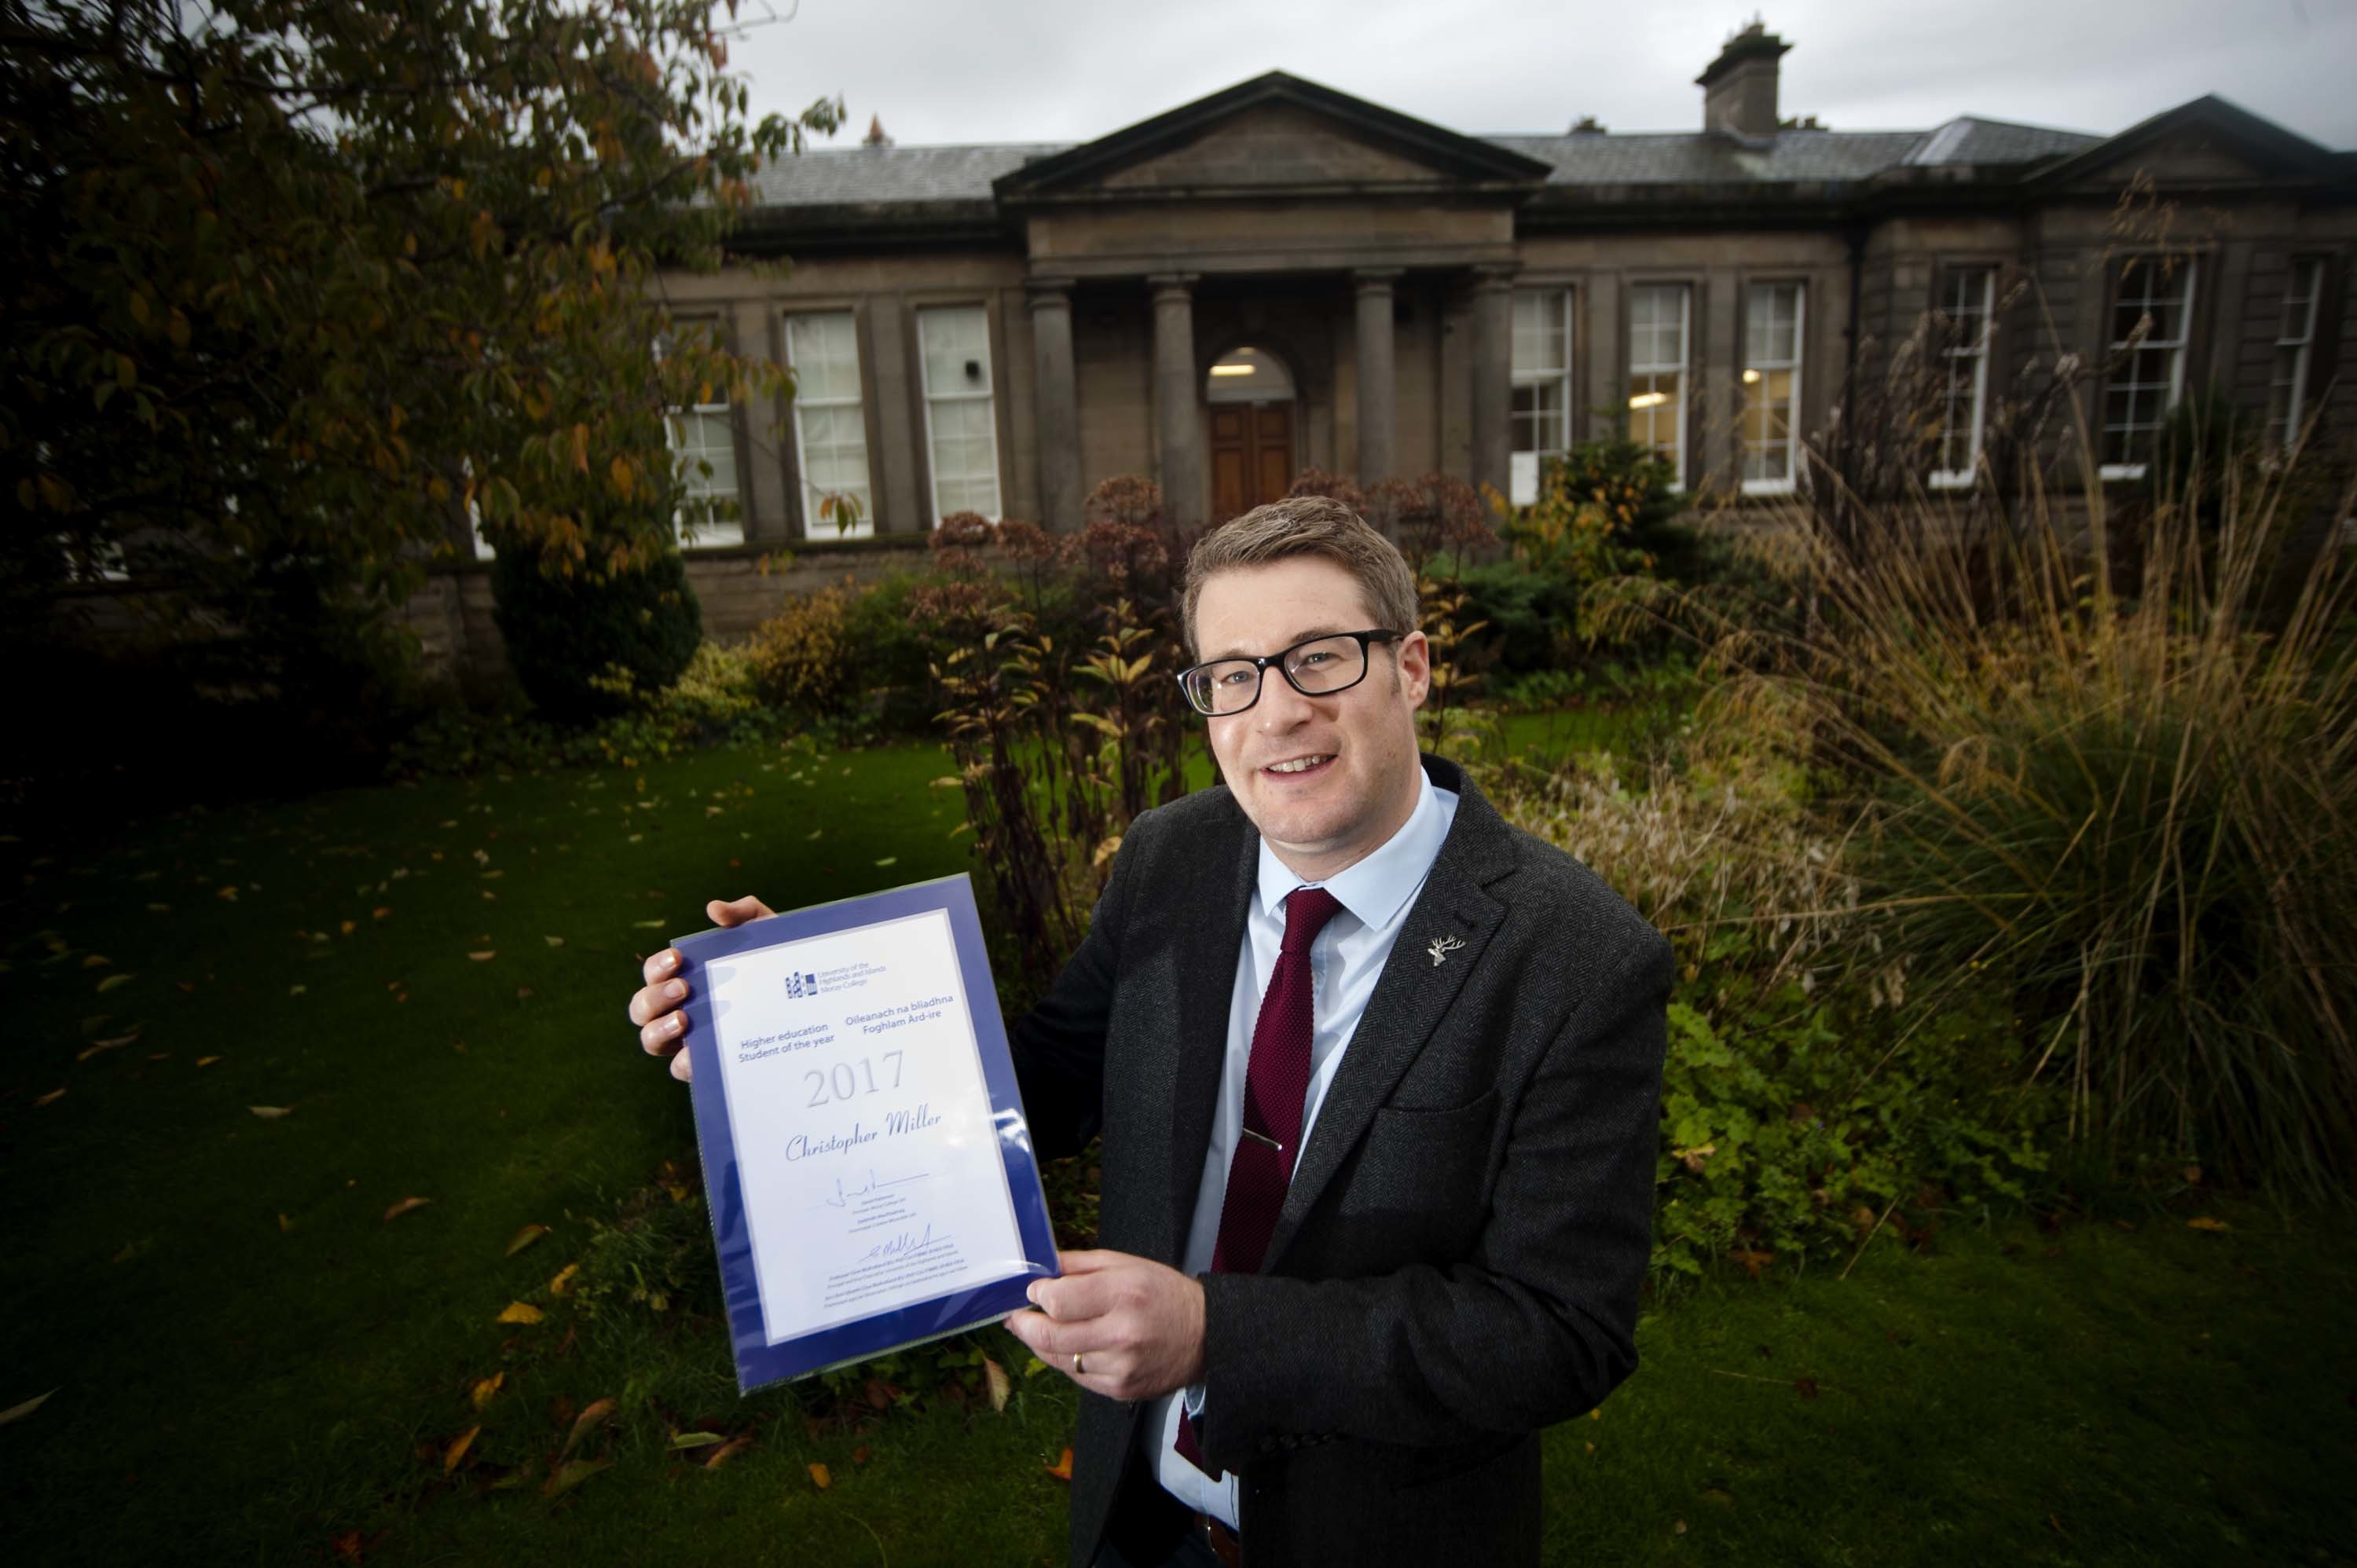 Christopher Miller, graduated with BSC Hons, has been awarded Moray College UHI Higher Education student of the year